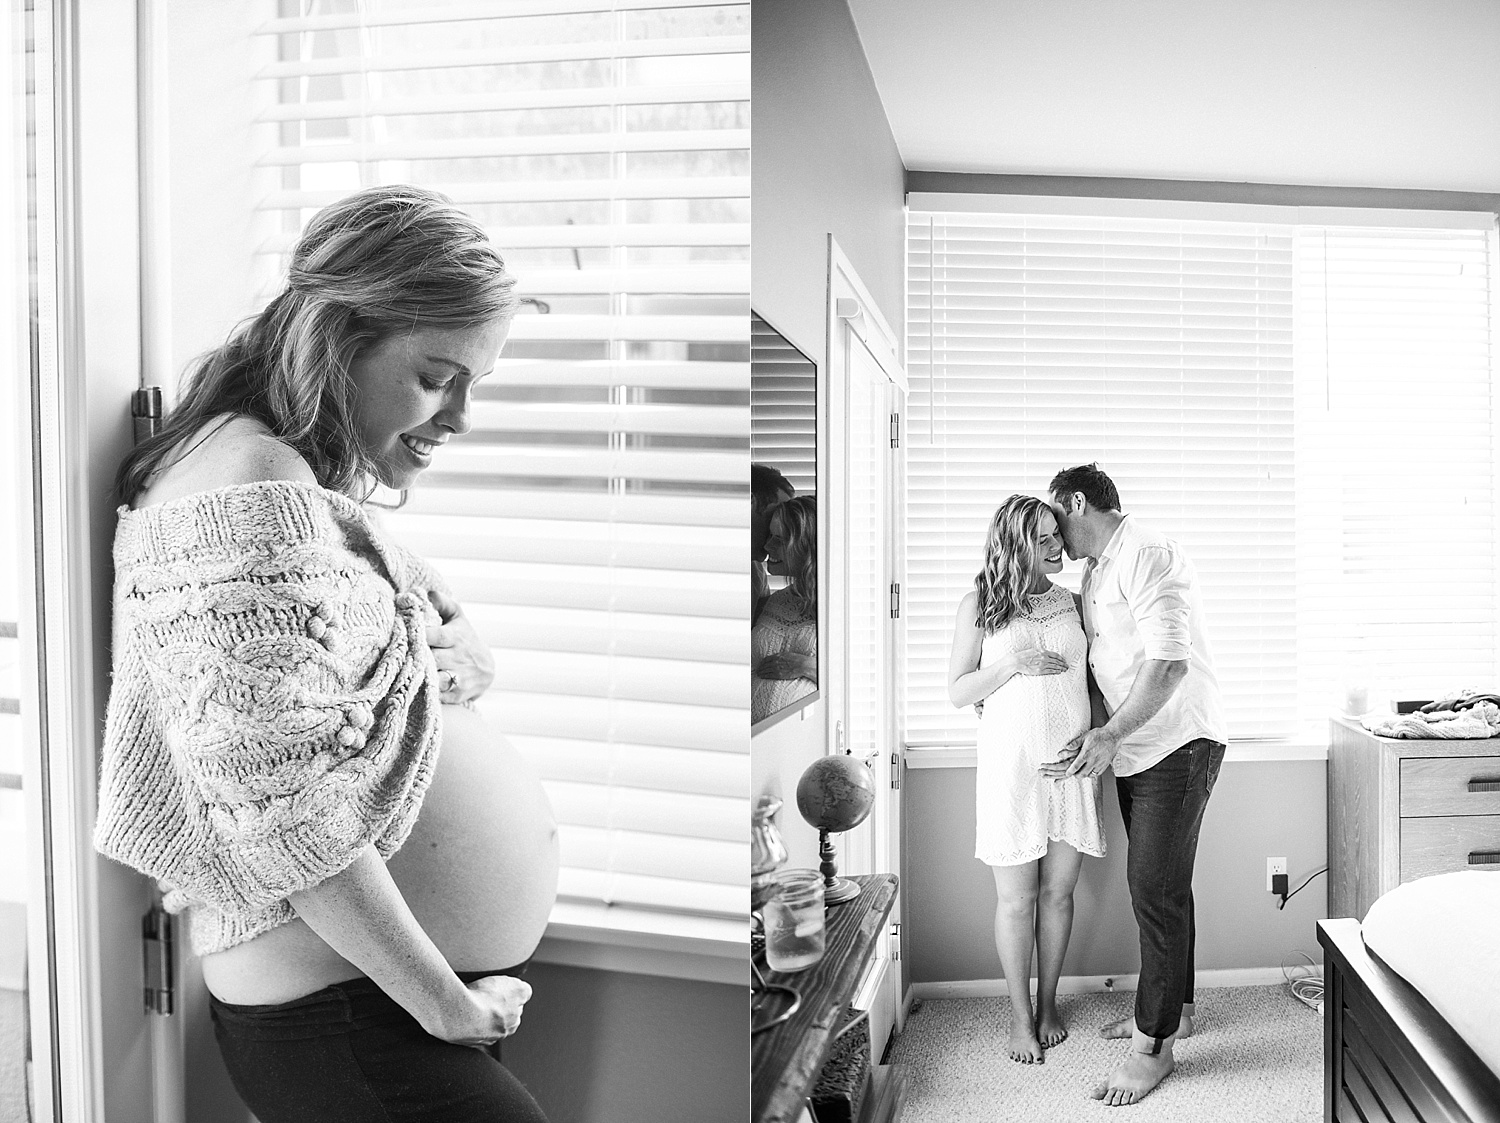 jennifer-jayn-photography-emeryville-lifestyle-maternity-portrait-session_0007.jpg